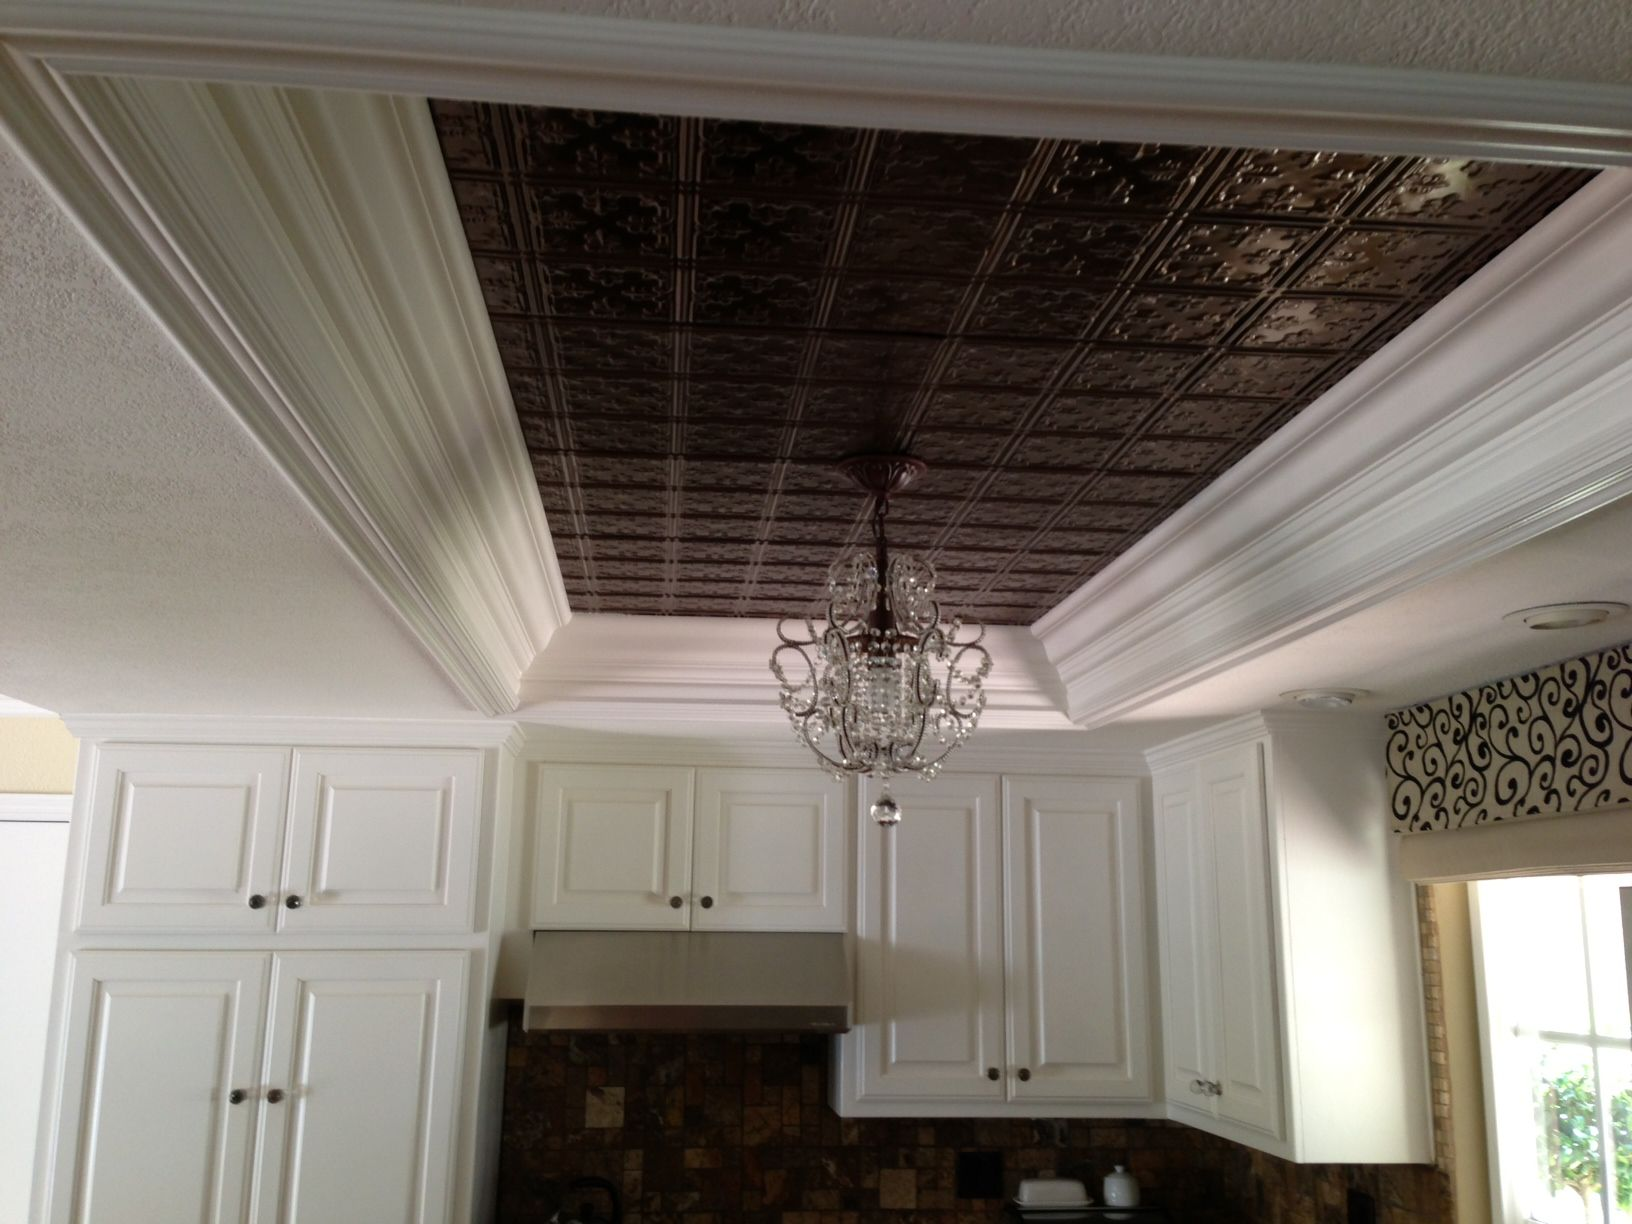 Kitchen ceiling tiles and hanging light replace dated fluorescent kitchen ceiling tiles and hanging light replace dated fluorescent lighting dailygadgetfo Images